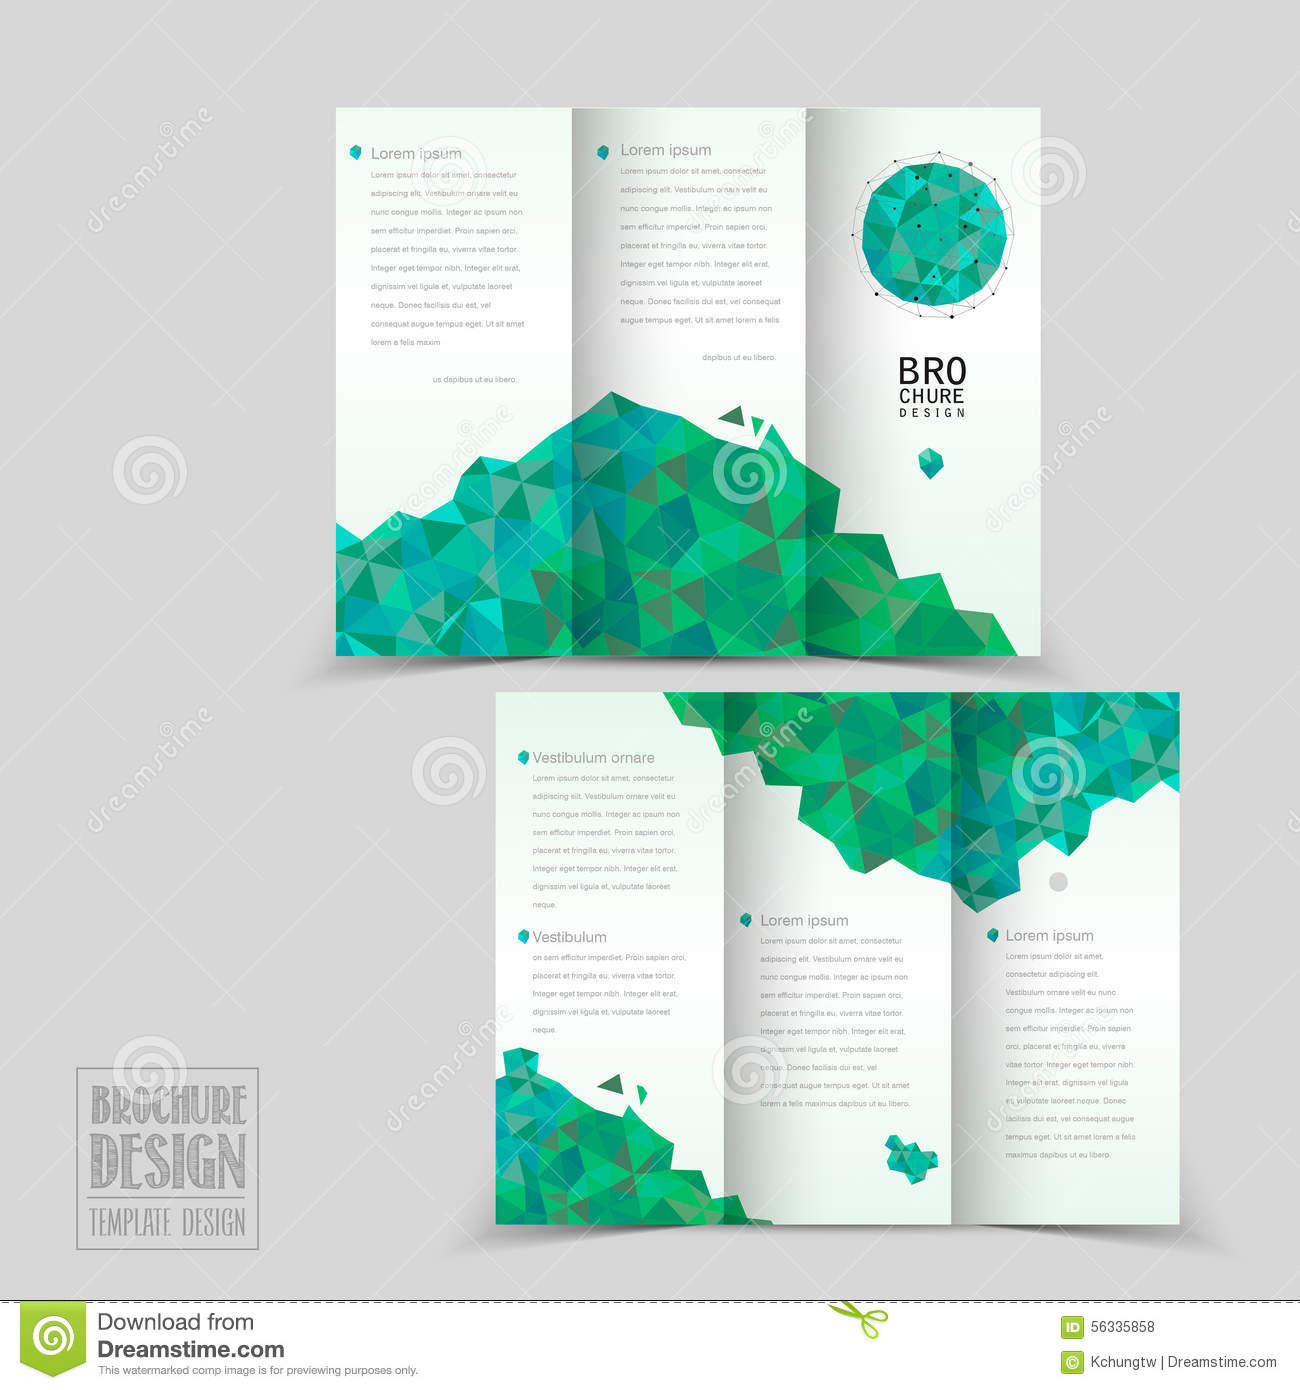 brochure download template - simplicity tri fold brochure template design stock vector